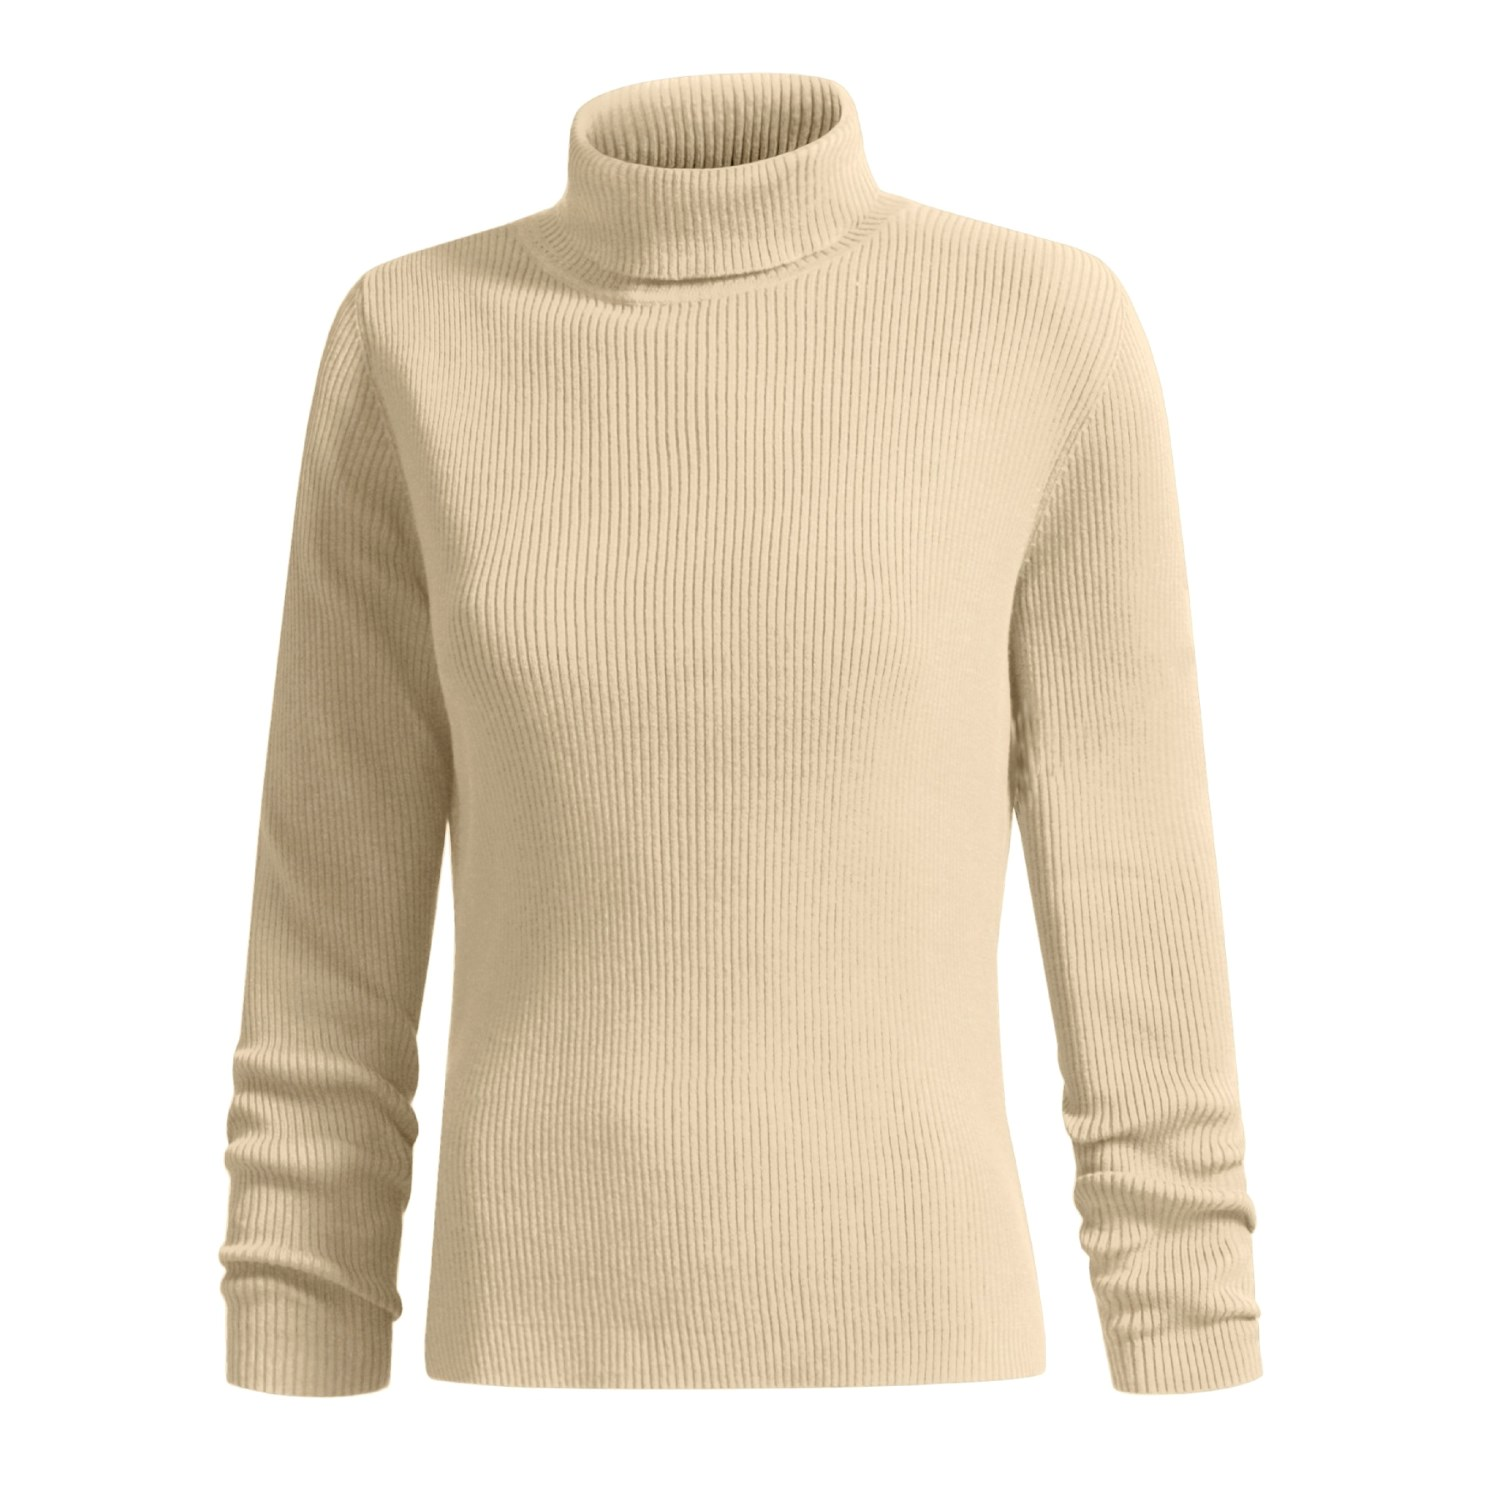 Telluride Clothing Co. Poorboy Ribknit Turtleneck (For